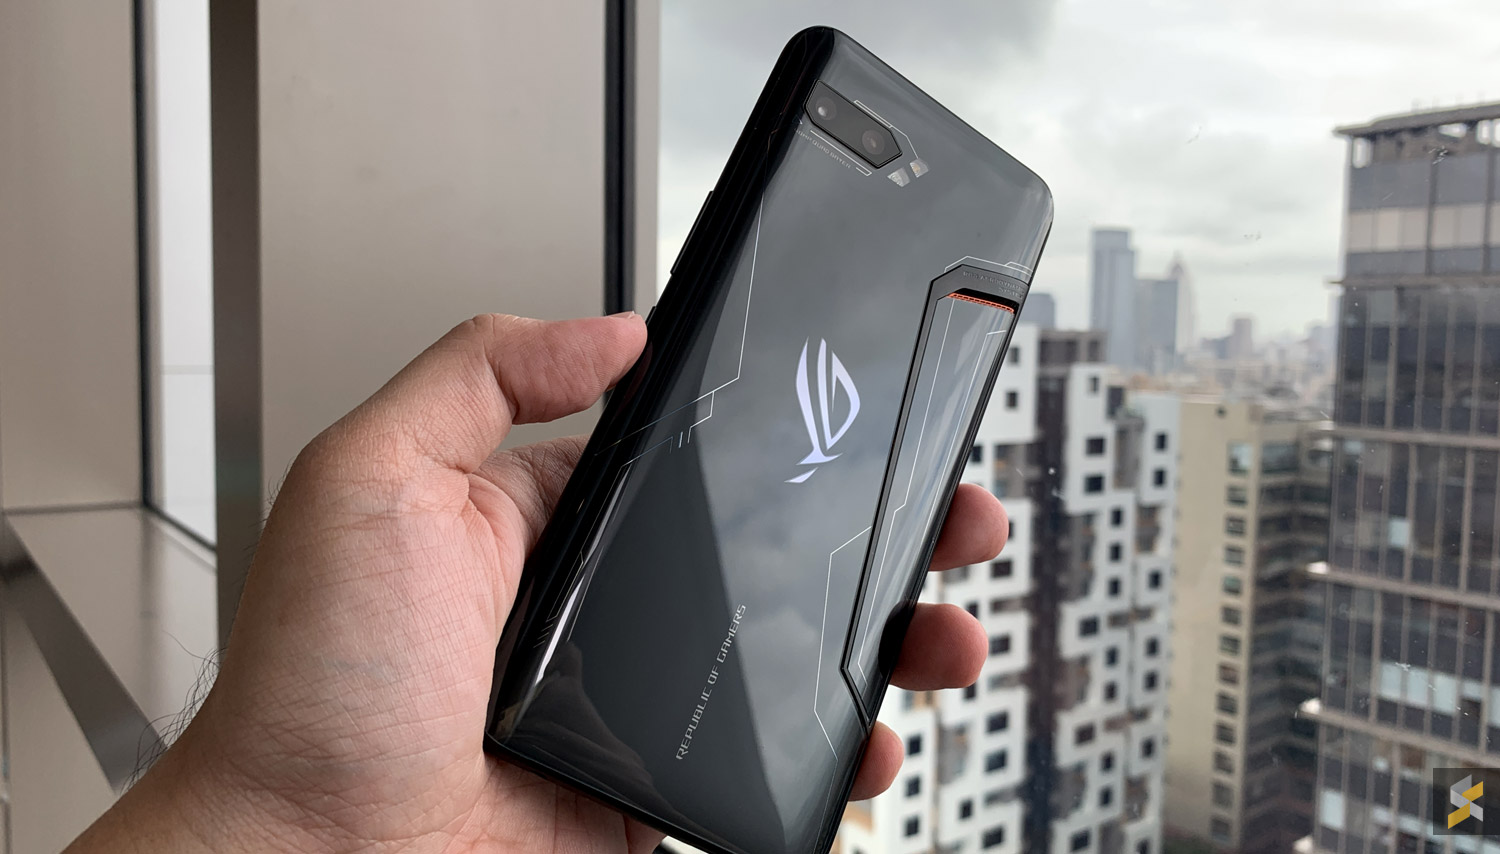 What is the price of the ASUS ROG Phone 2 smartphone